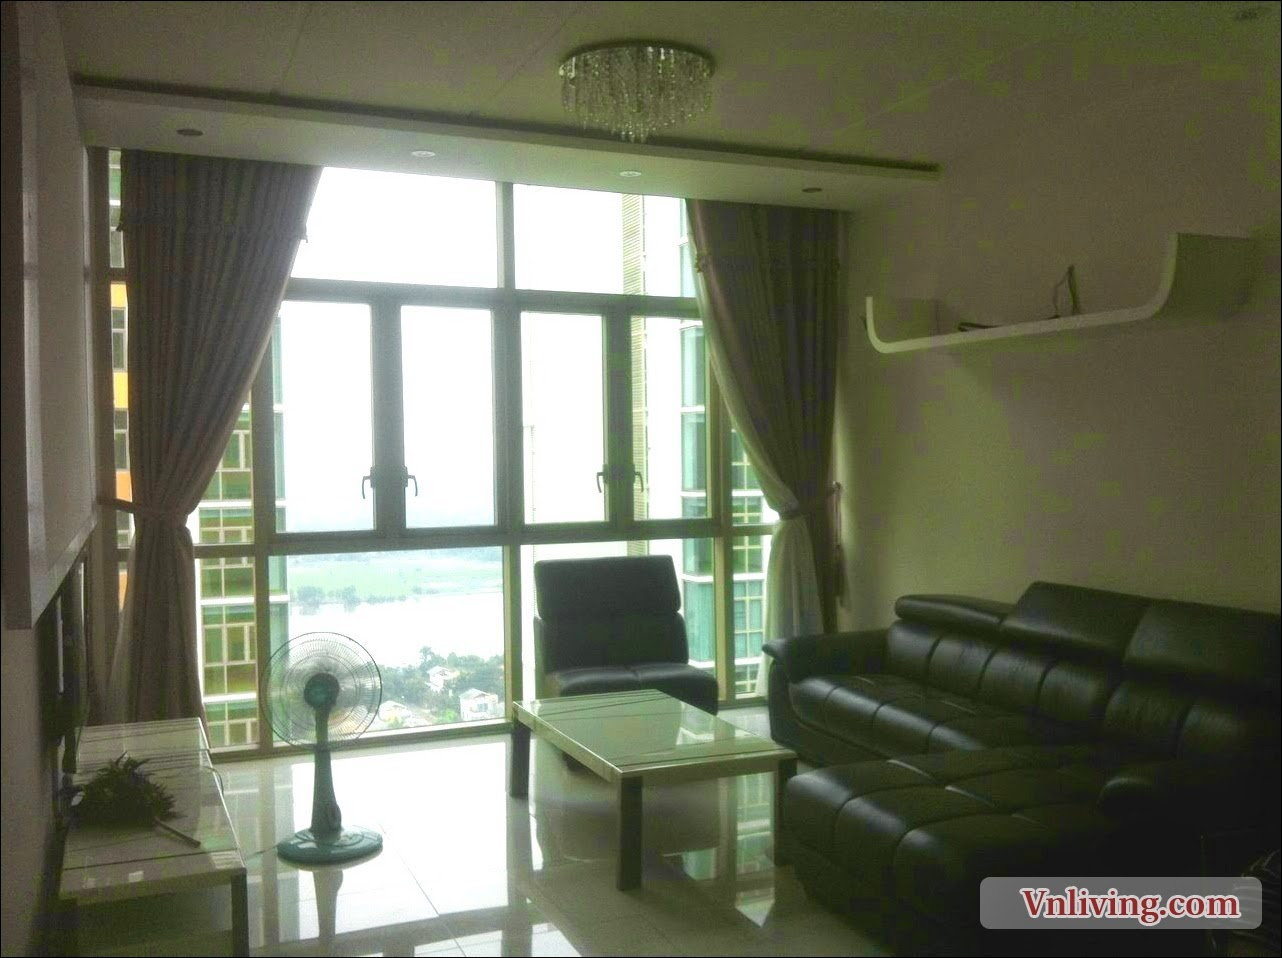 Apartment for rent nice pool view in The Vista An Phu , HCMC